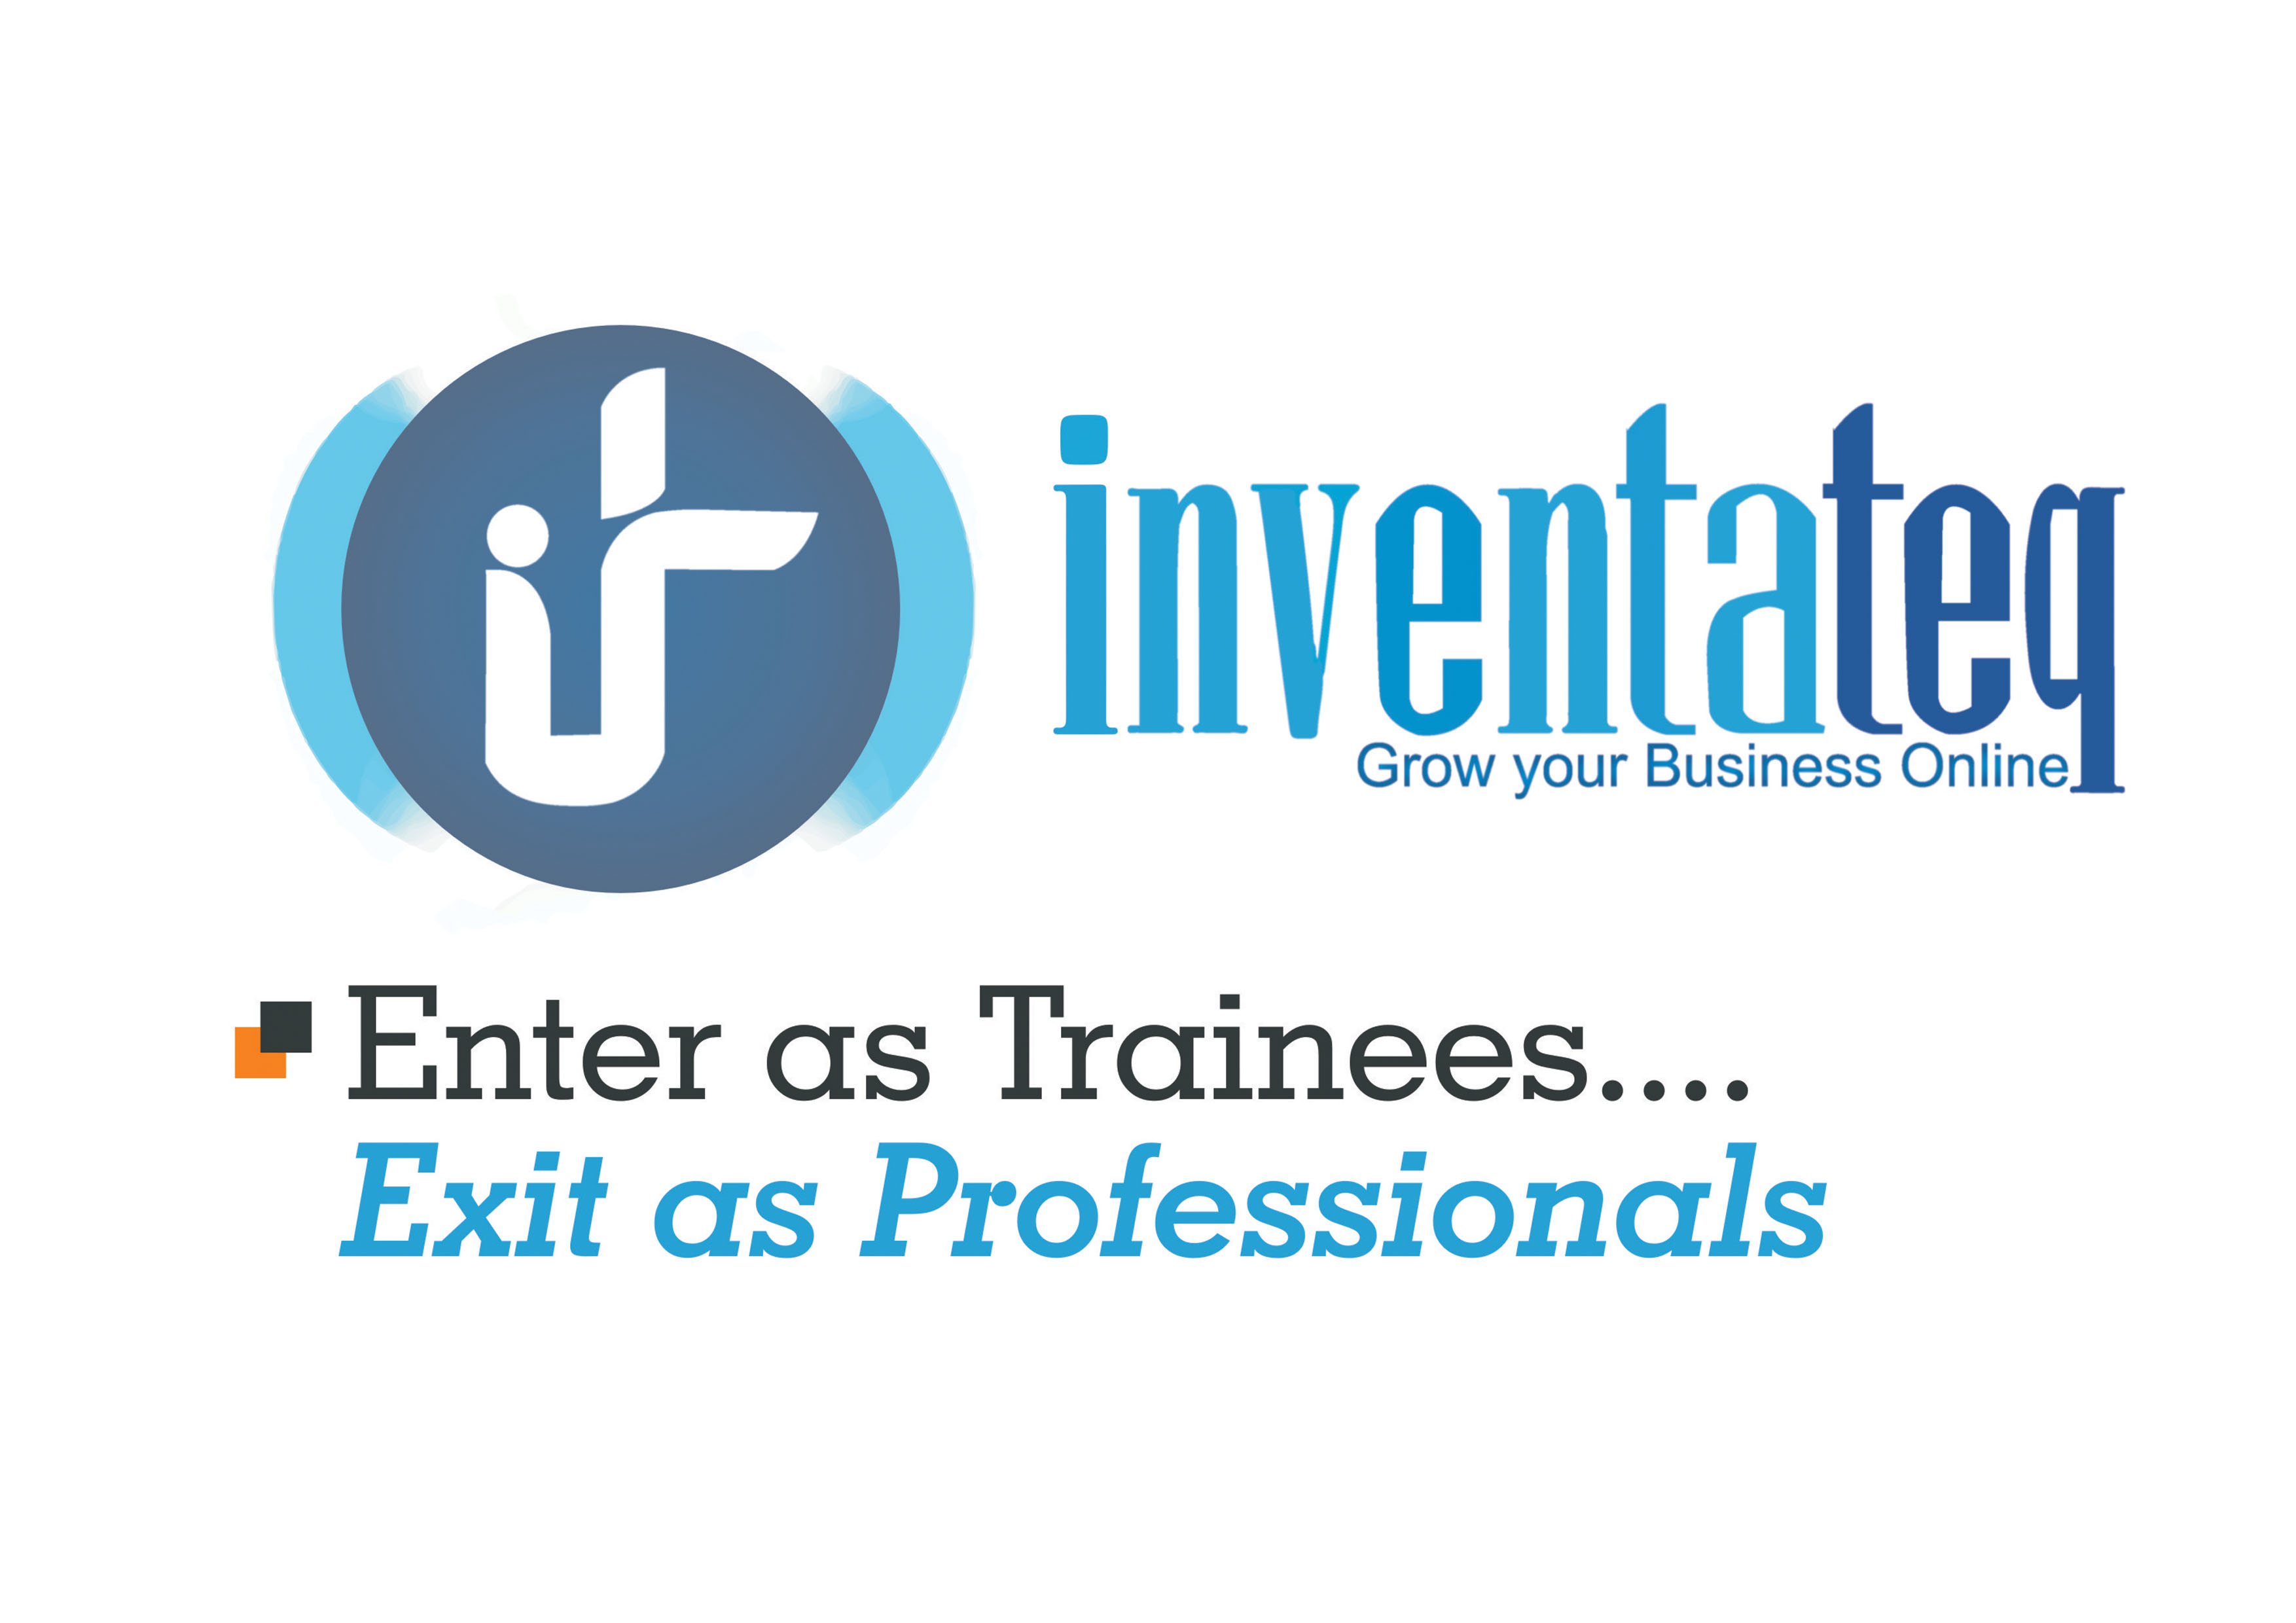 Inventateq Reviews, Inventateq Complaints from trained Students